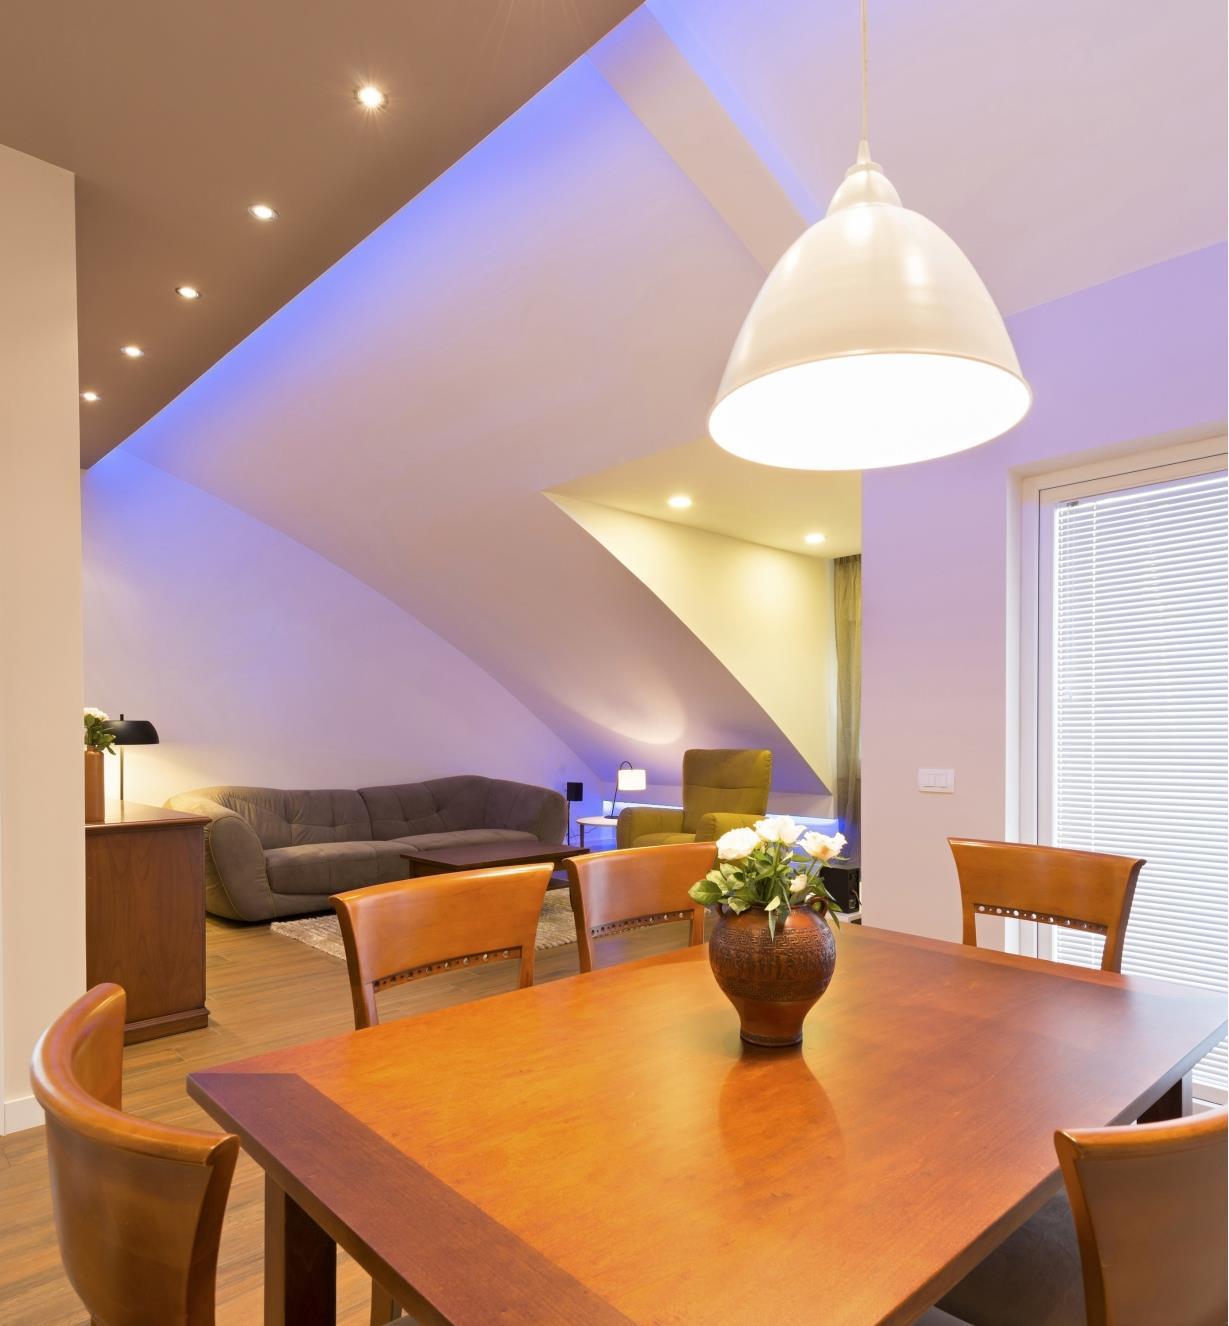 A dining room/living room lit with LED down lights